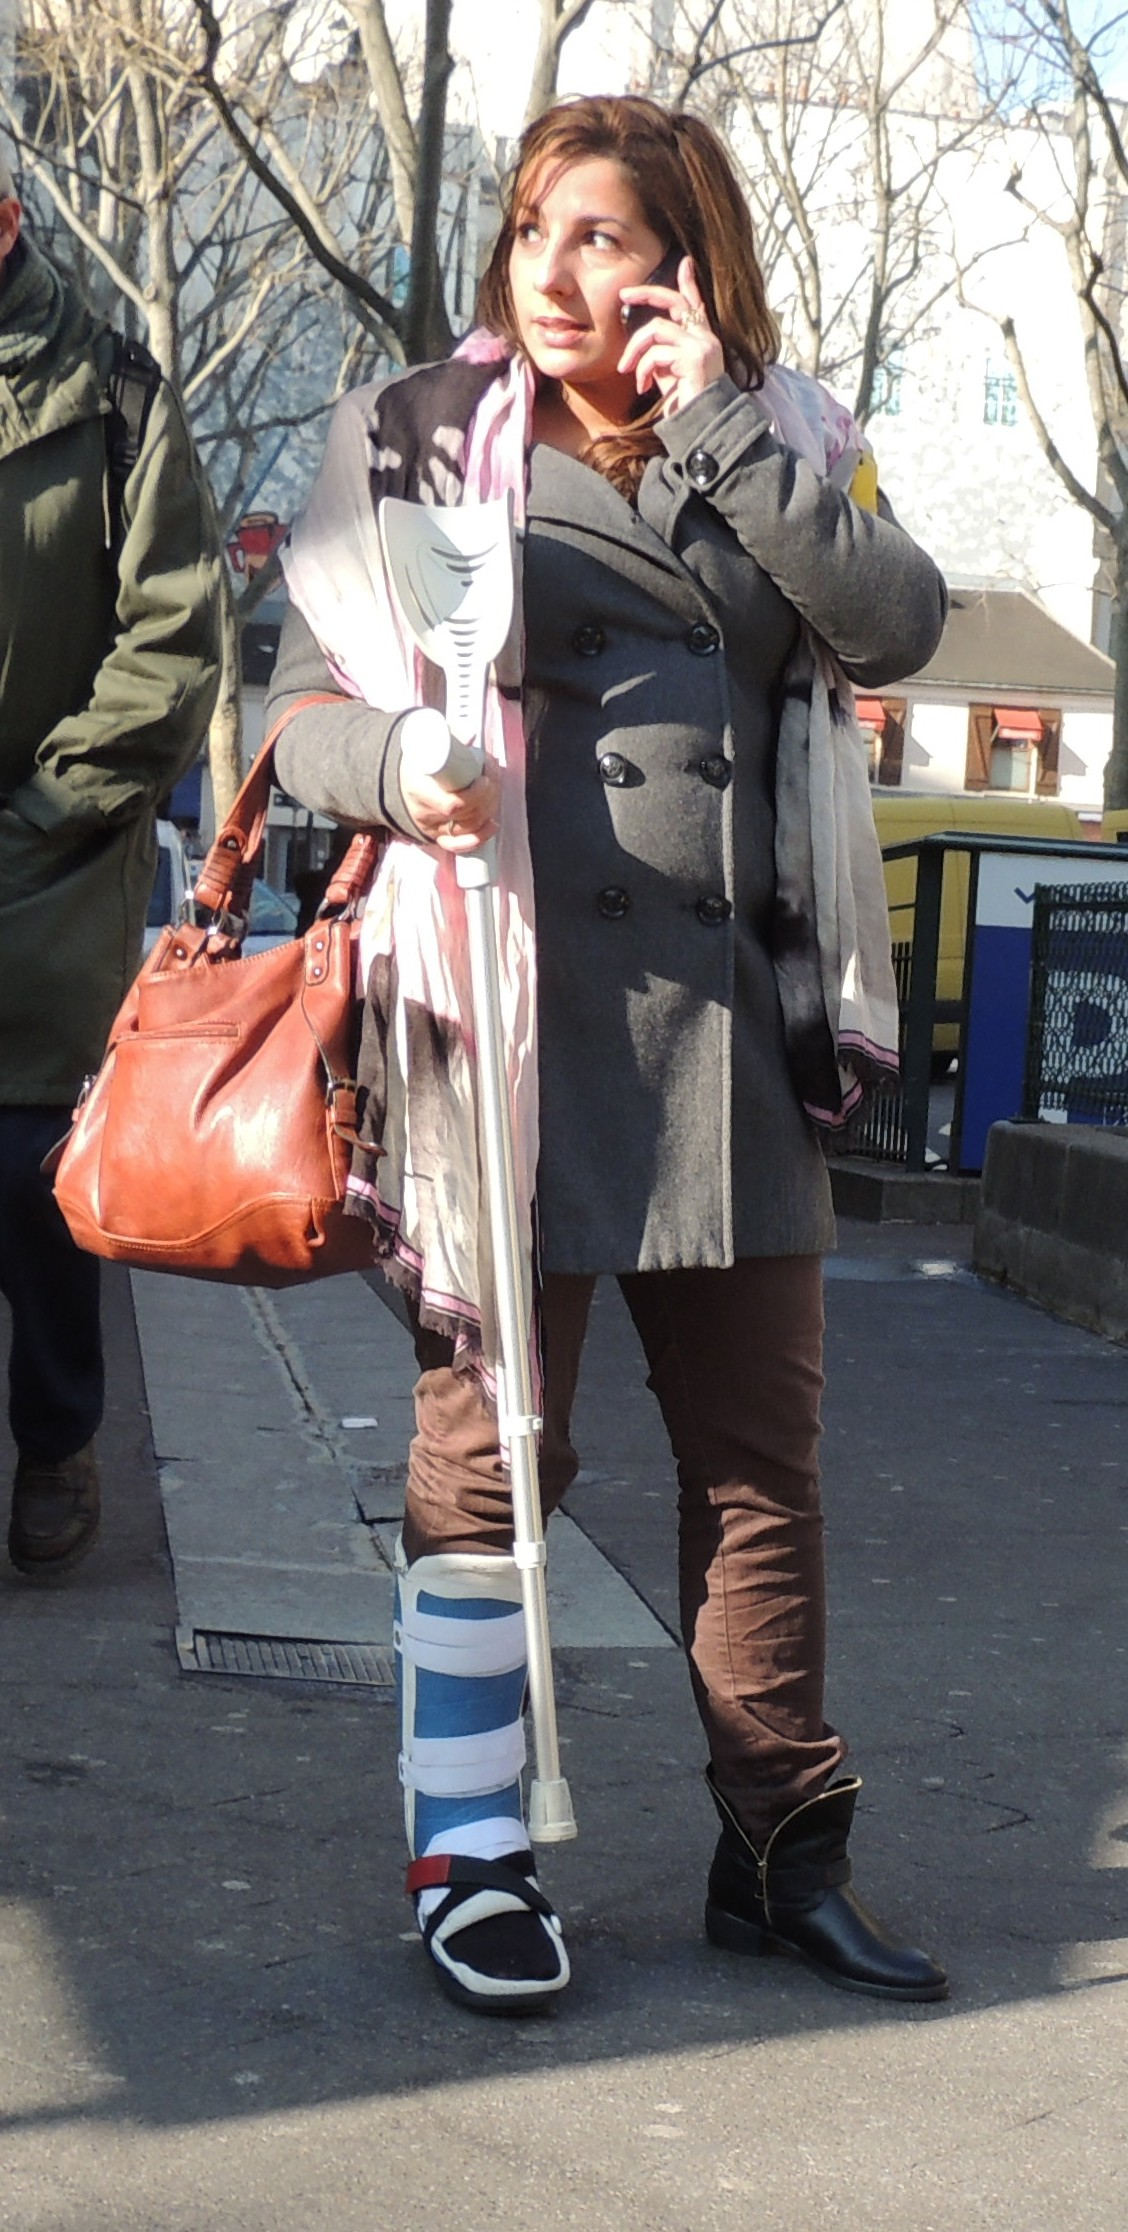 Woman in removable SLC on crutches.